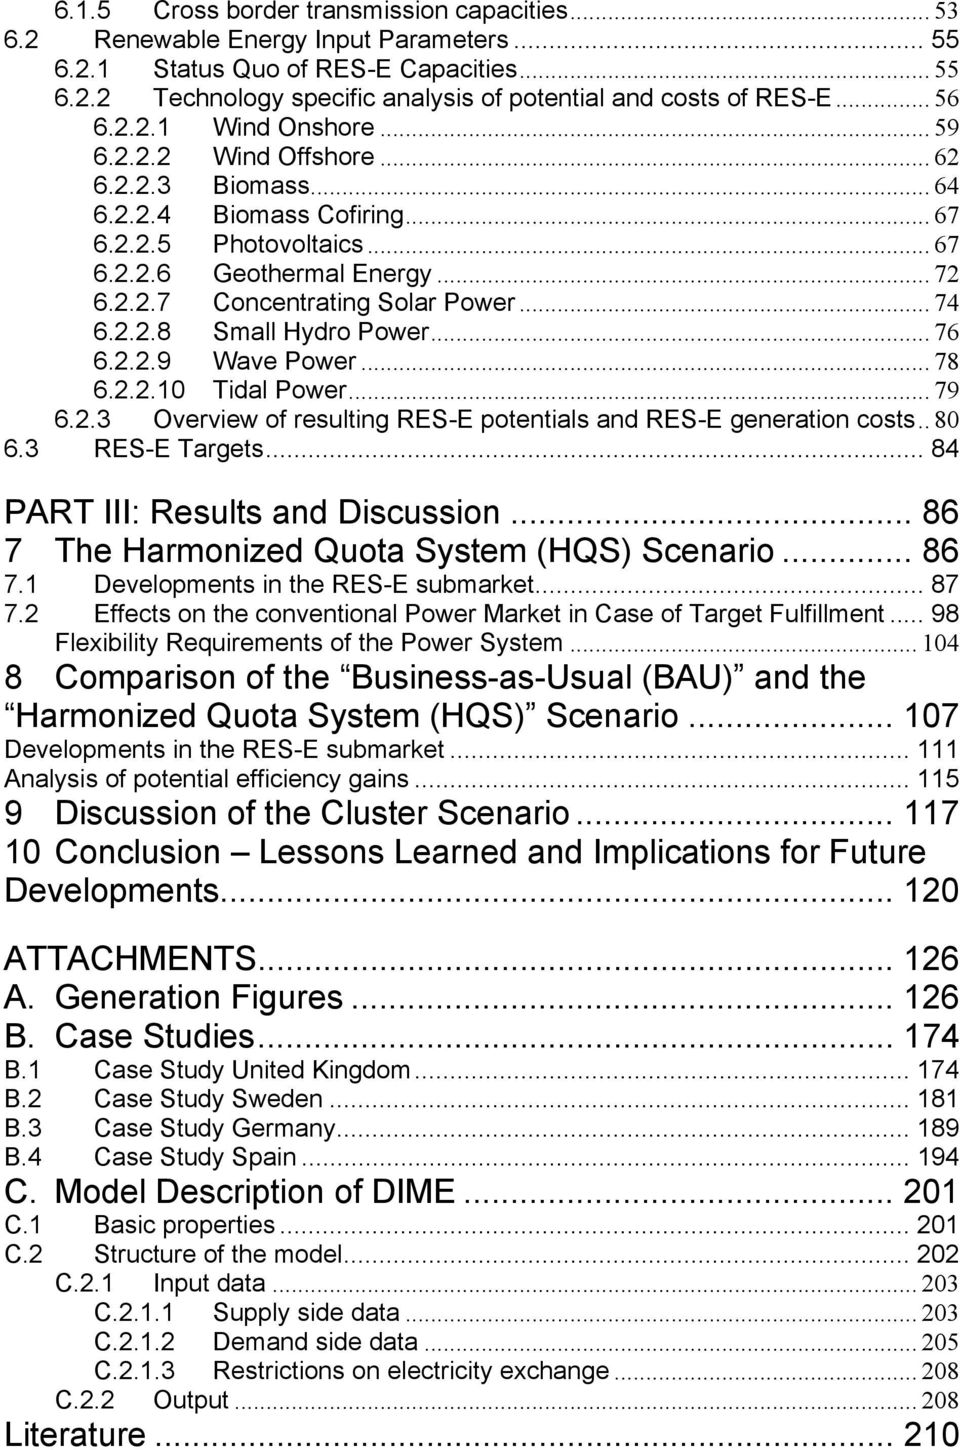 .. 74 6.2.2.8 Small Hydro Power... 76 6.2.2.9 Wave Power... 78 6.2.2.10 Tidal Power... 79 6.2.3 Overview of resulting RES-E potentials and RES-E generation costs.. 80 6.3 RES-E Targets.